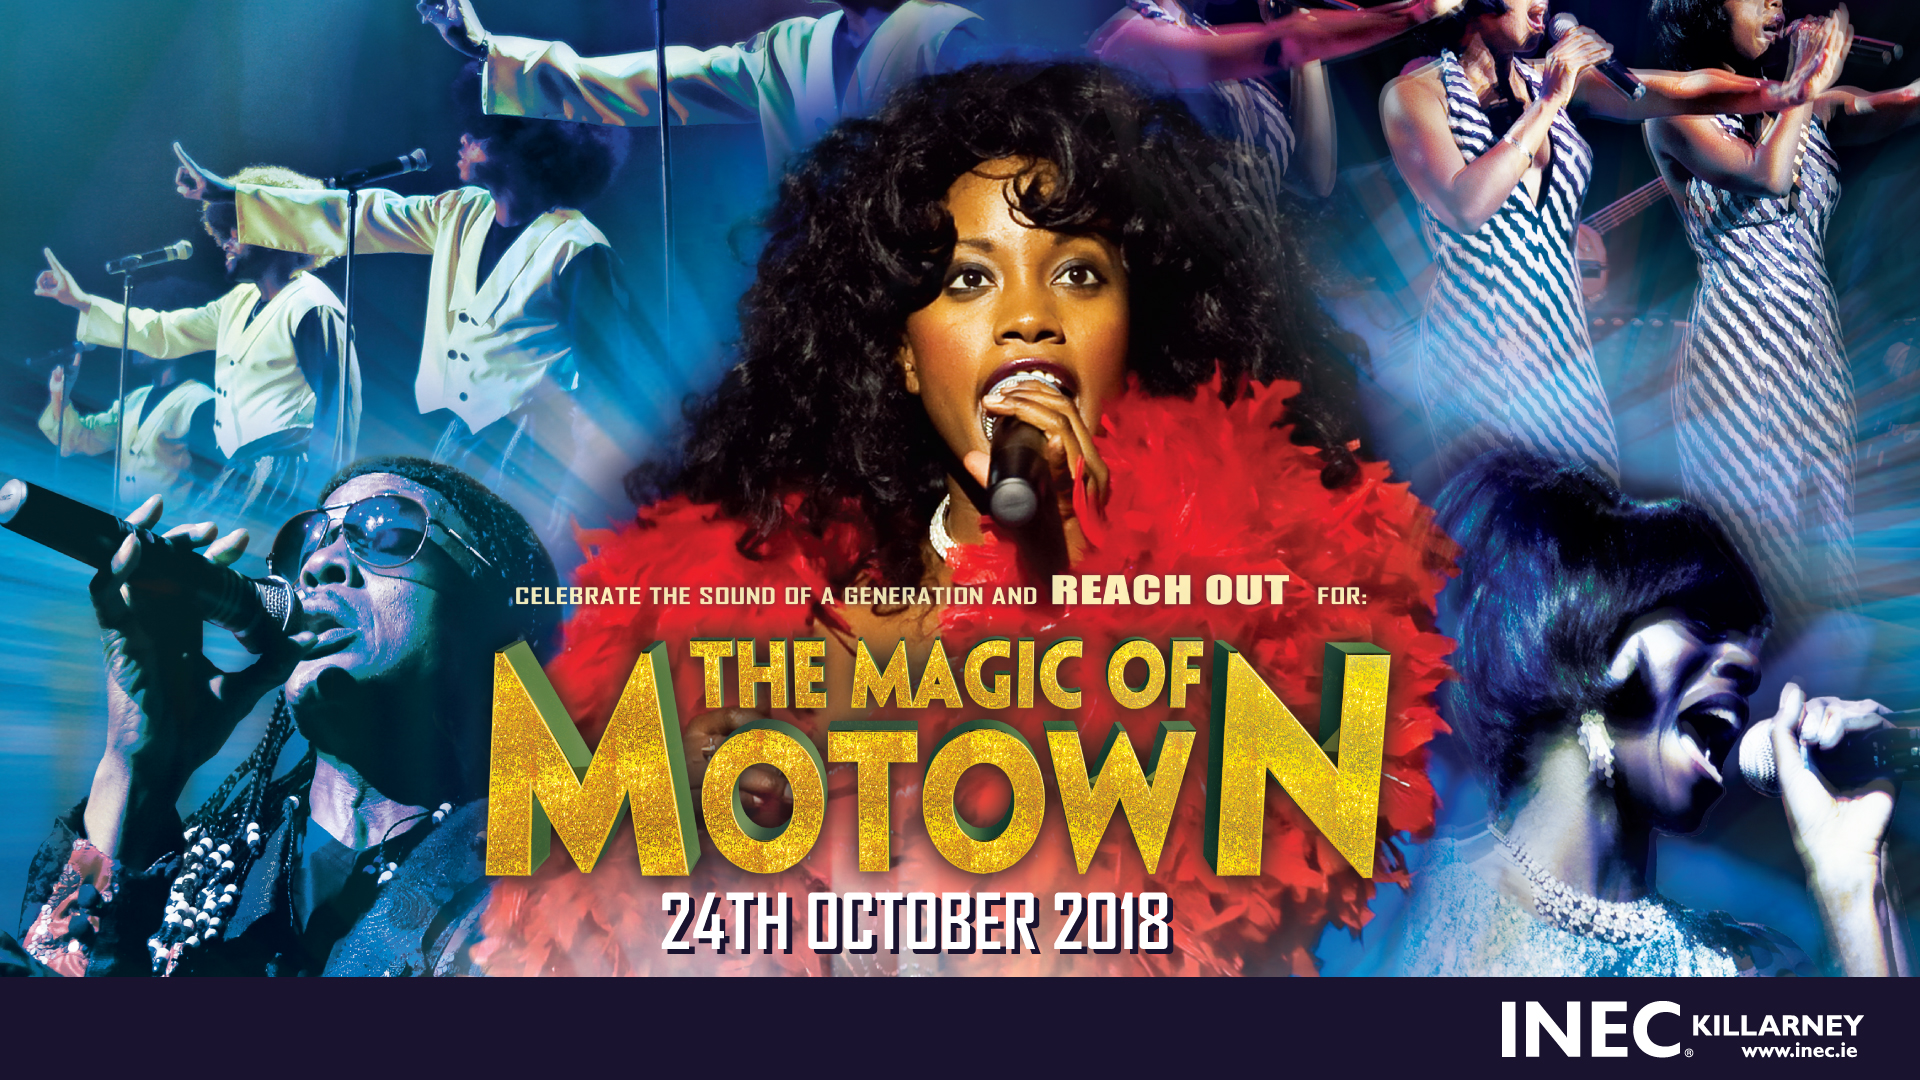 The Magic of Motown comes to the INEC Killarney on October 24th